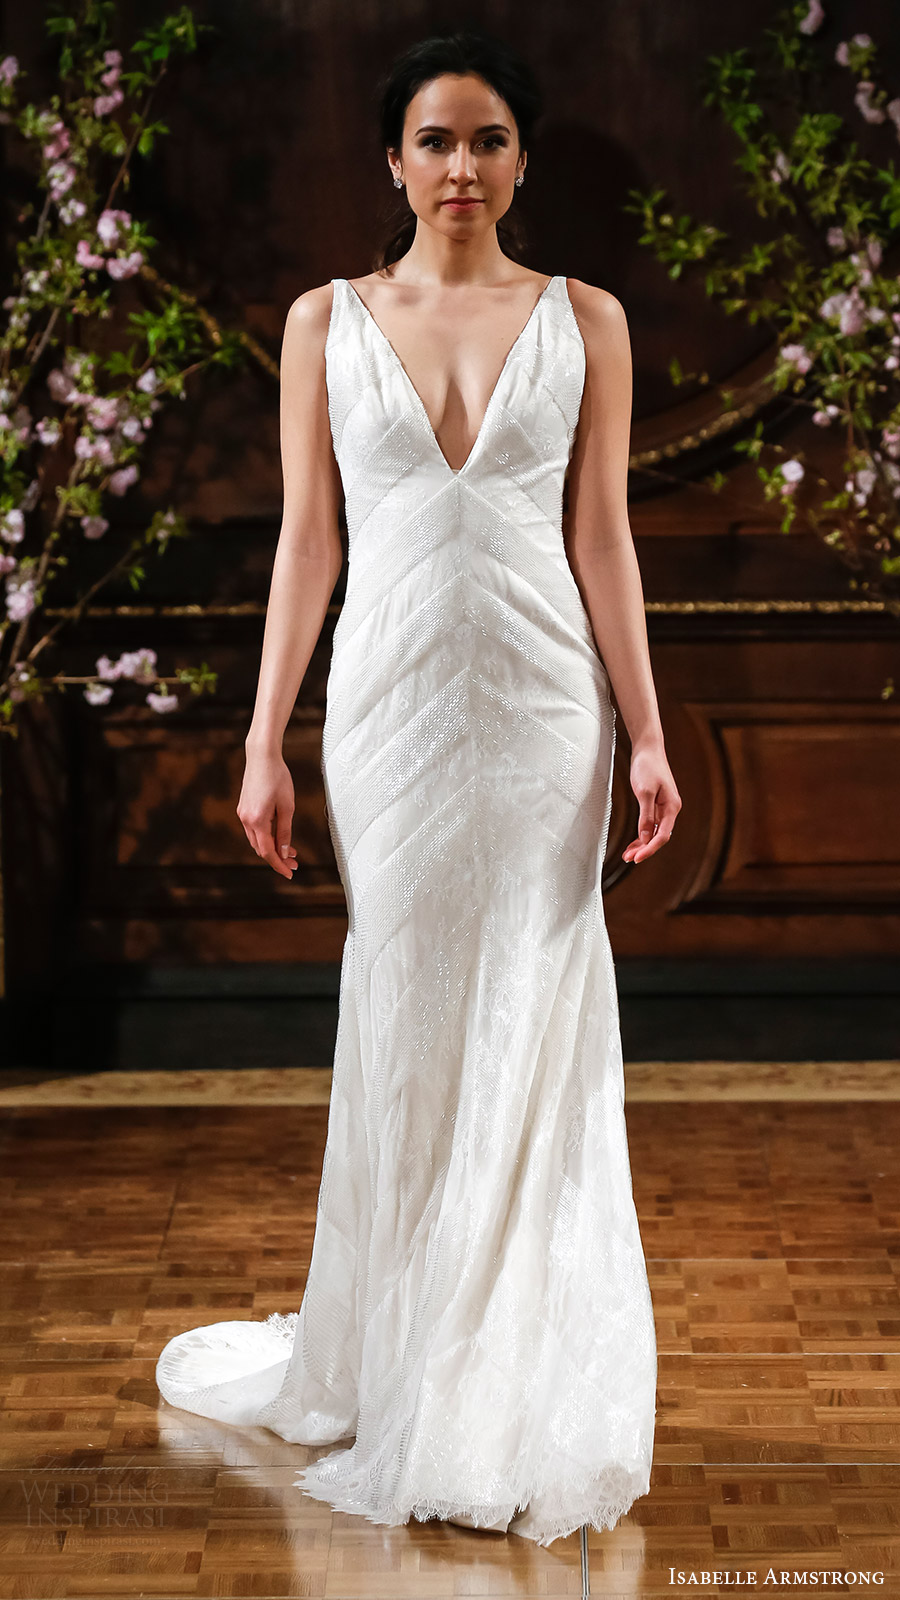 isabelle armstrong bridal spring 2017 sleeveless vneck trumpet wedding dress (rusty) mv elegant